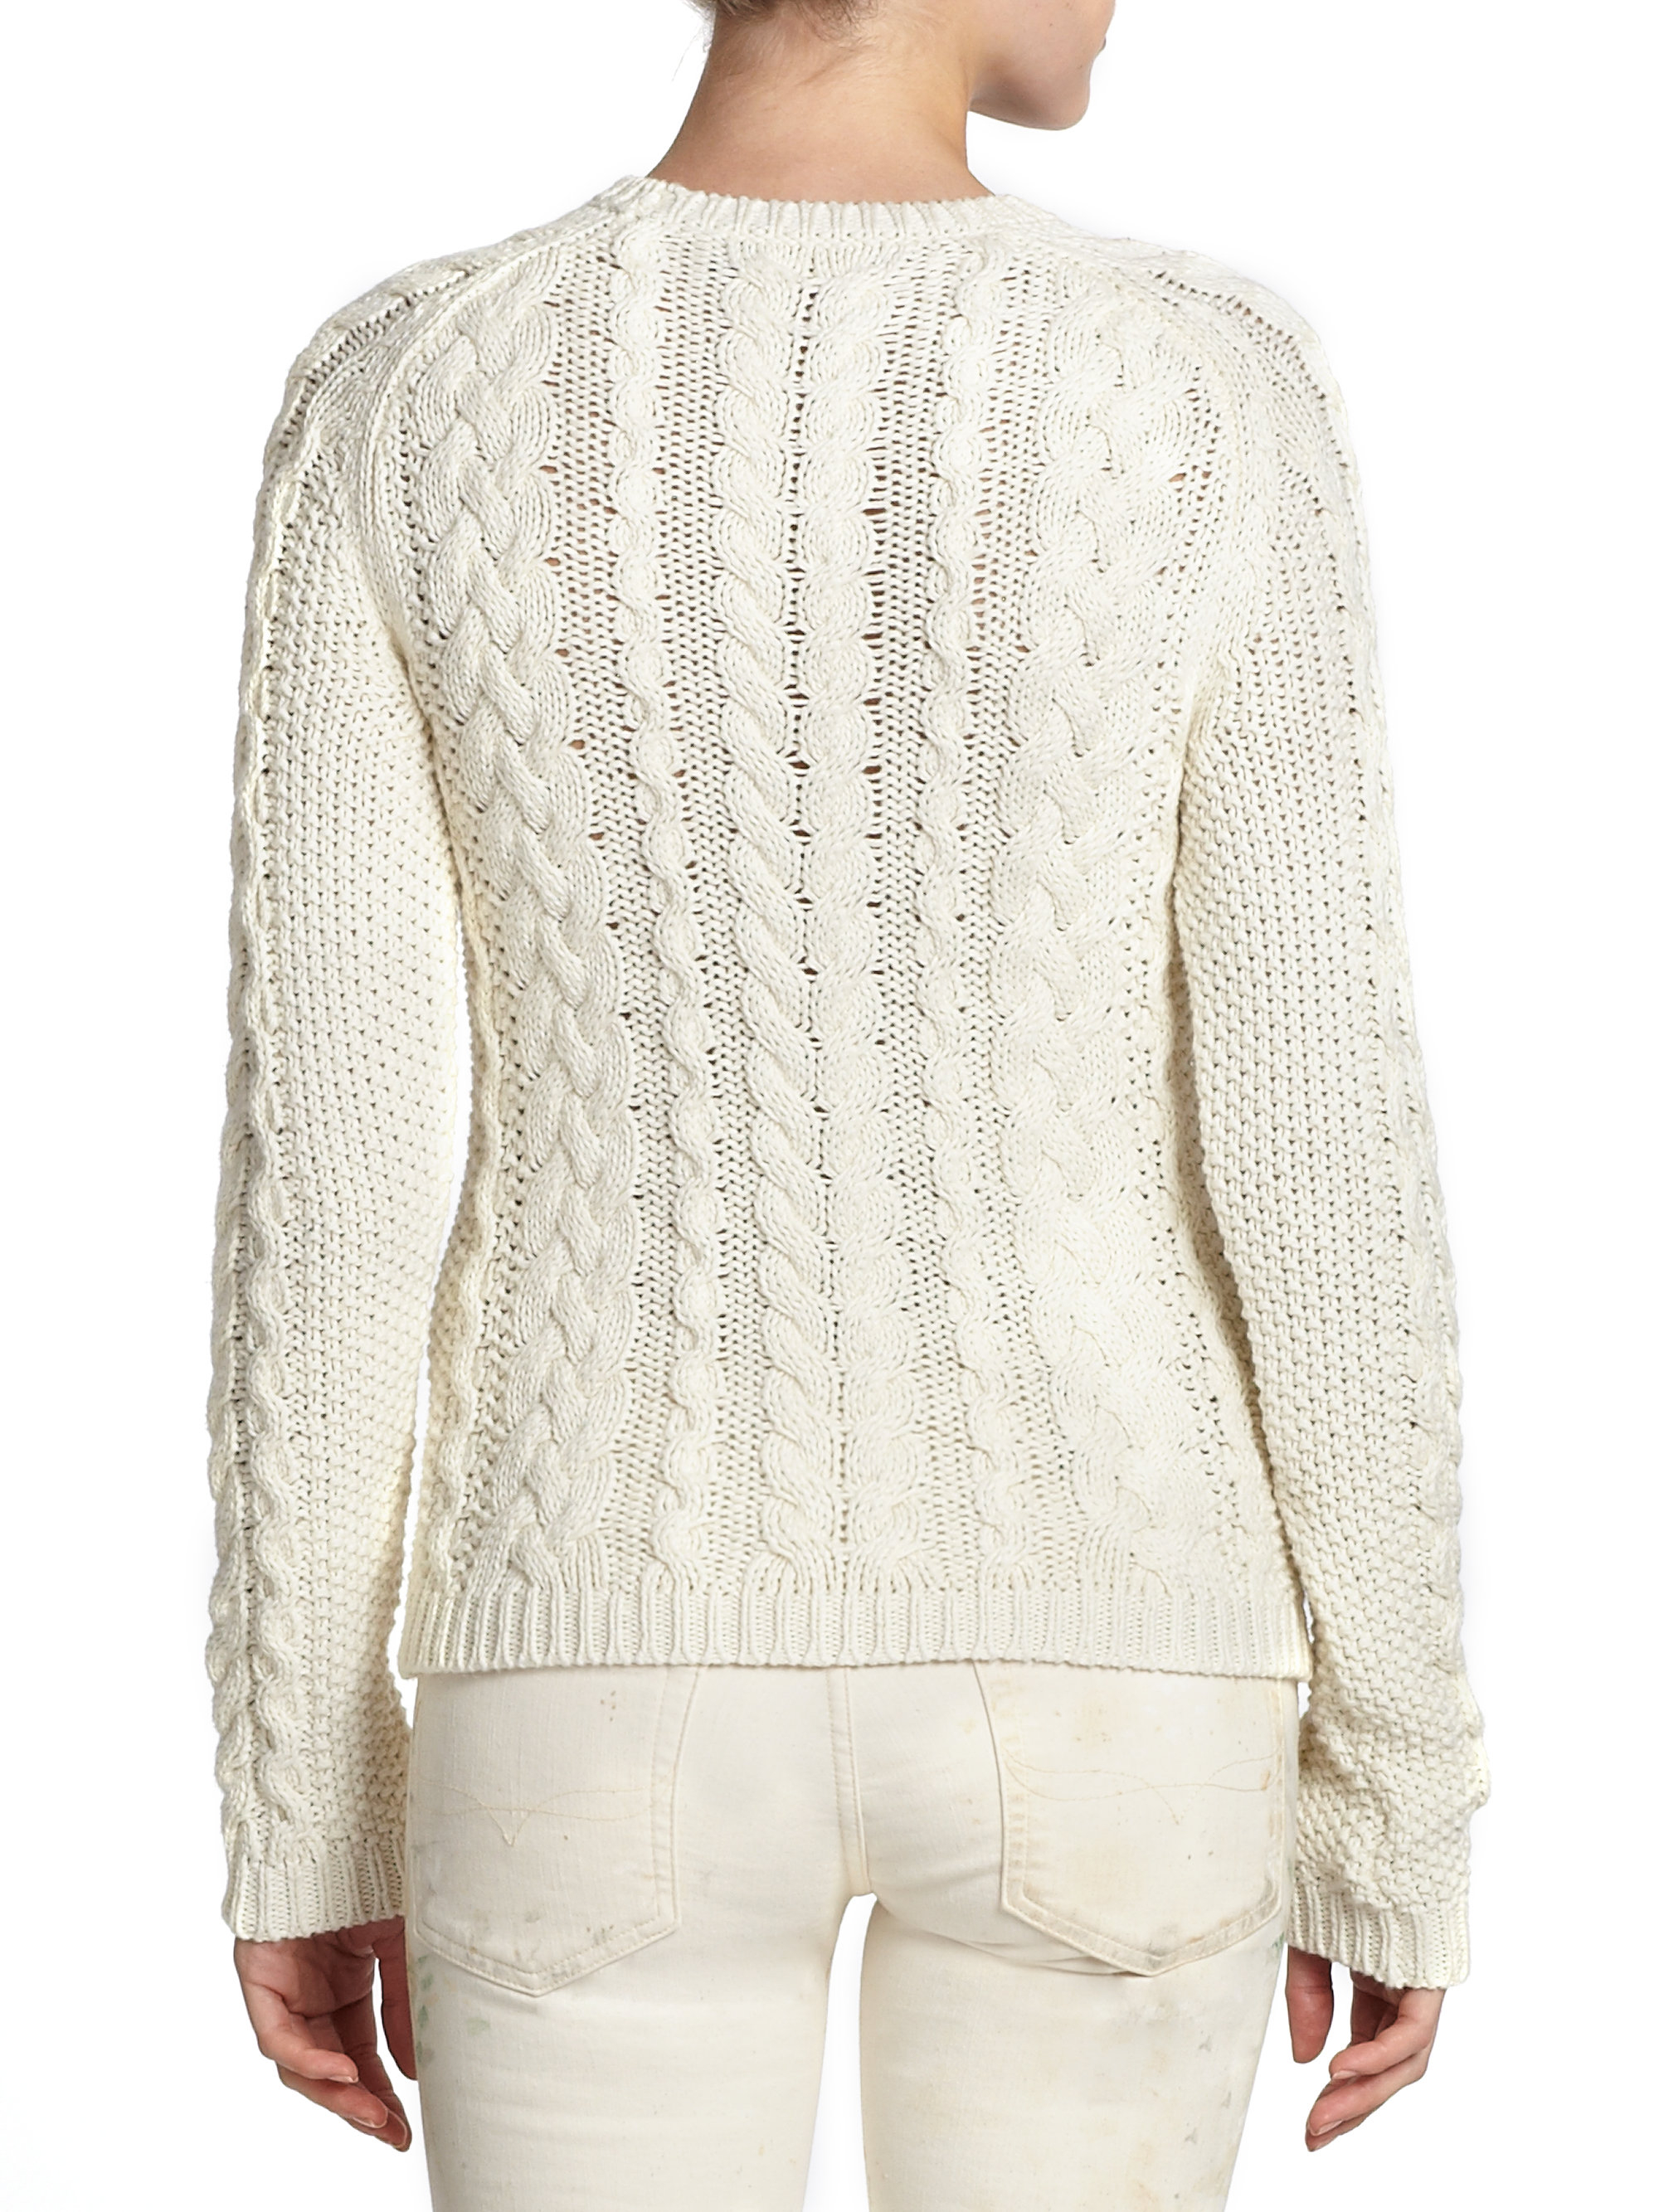 Lyst Polo Ralph Lauren Cotton Cable Knit Sweater In Natural